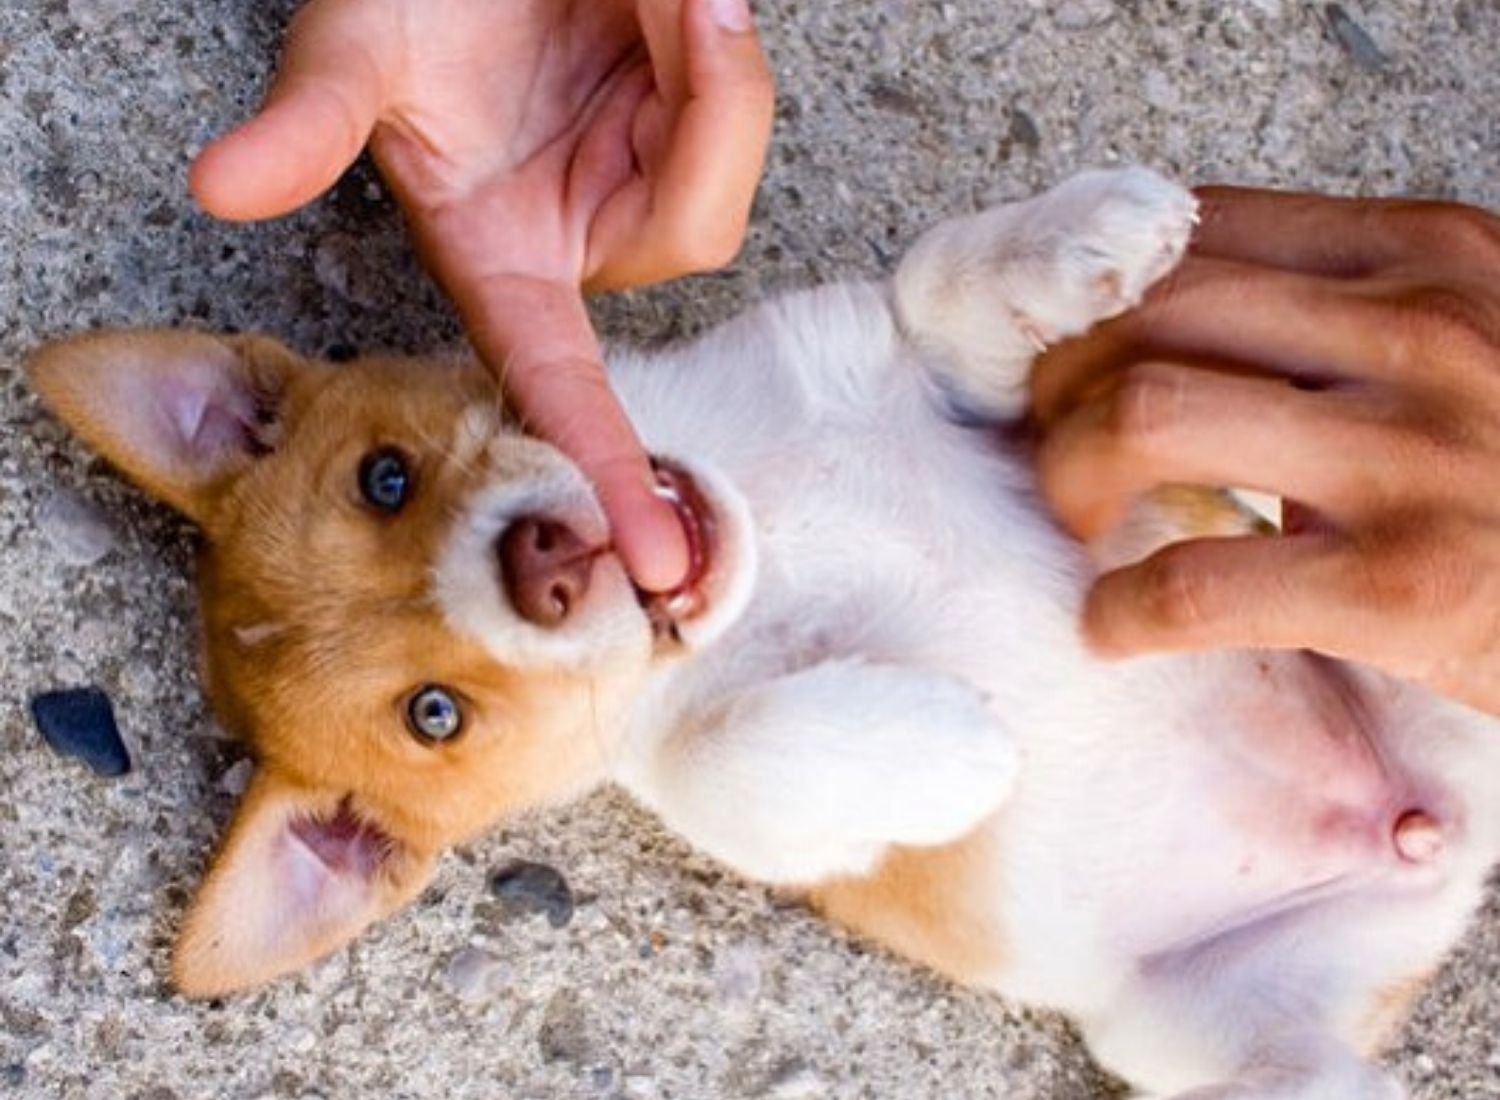 Why do Pooches love their belly rubs?